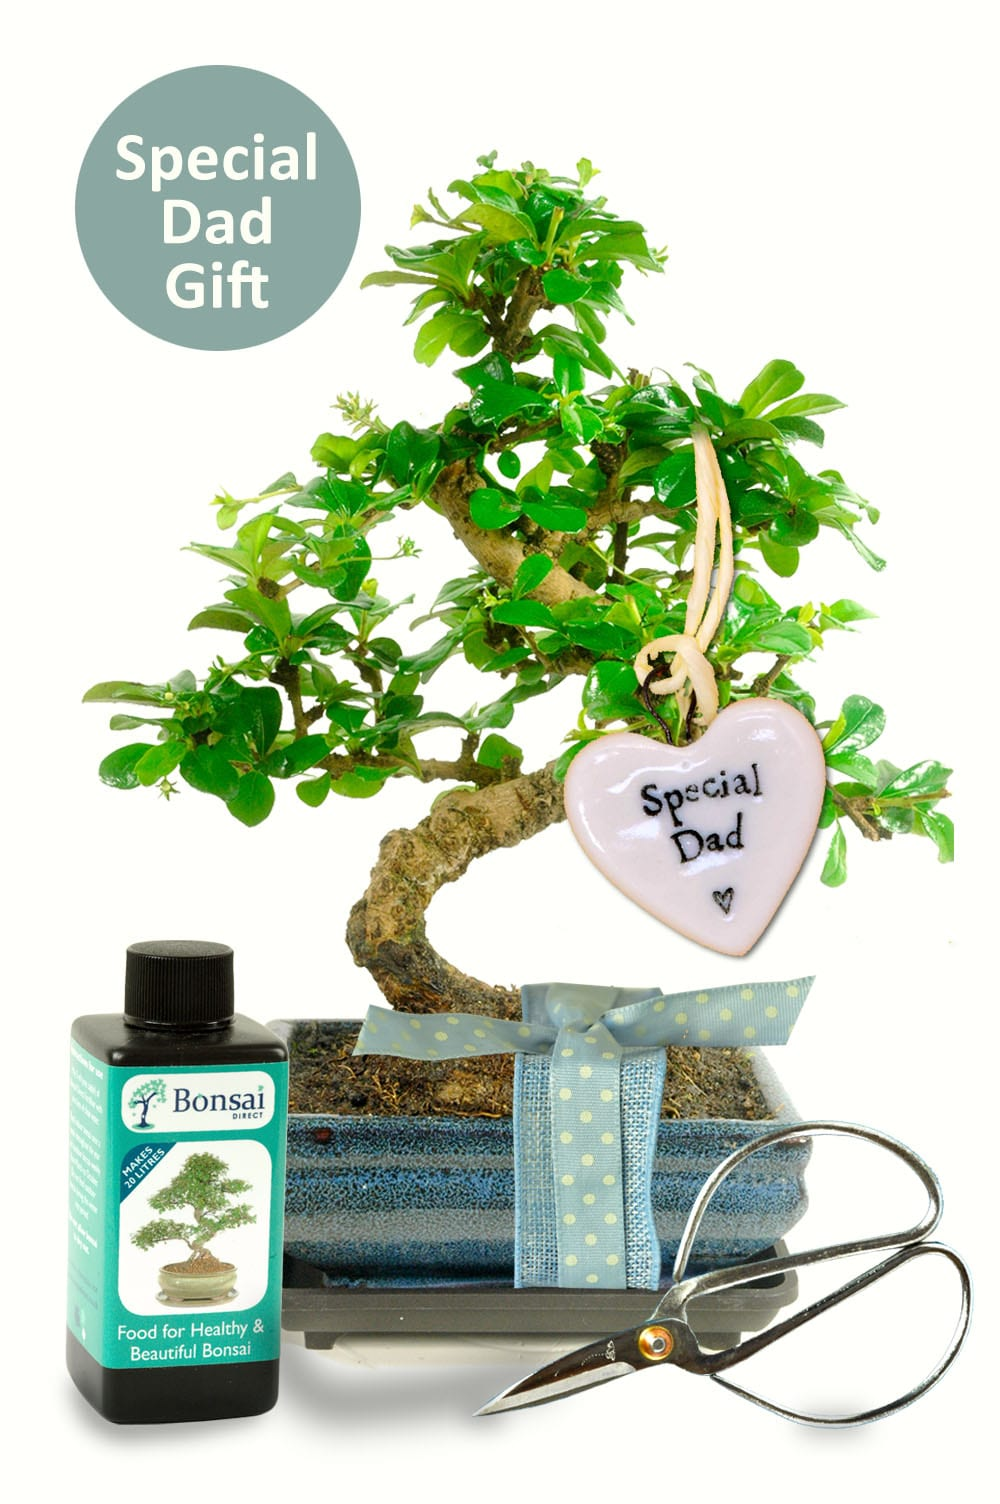 Twisty flowering Dads bonsai starter set